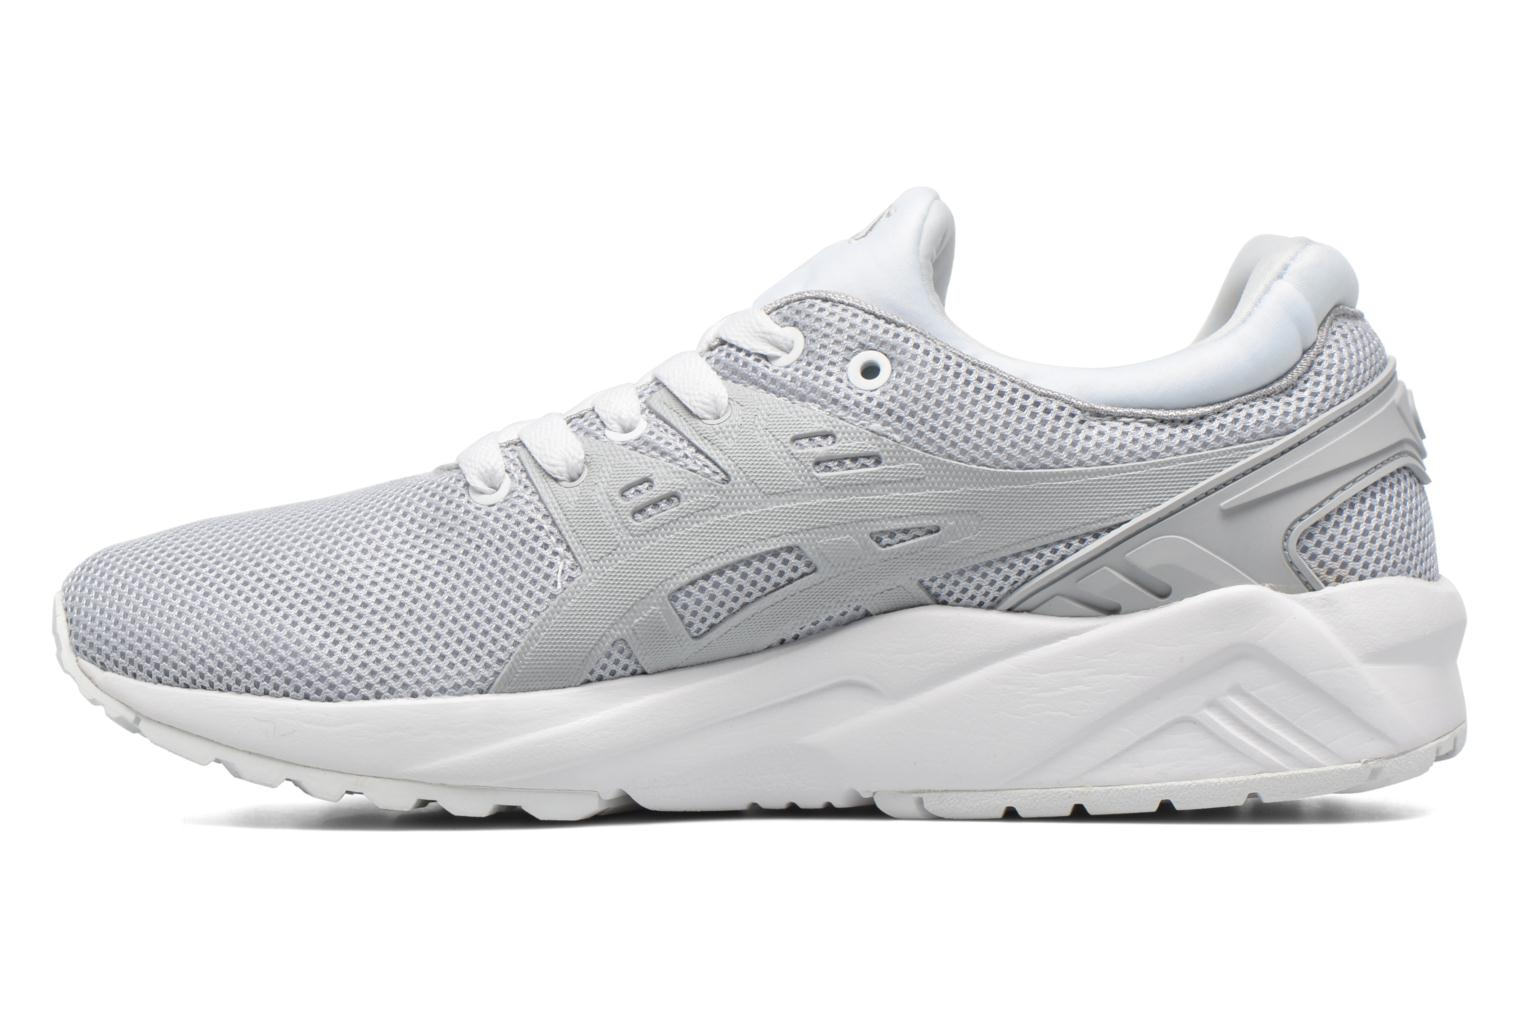 Gel-Kayano Trainer Evo W Soft grey/soft grey